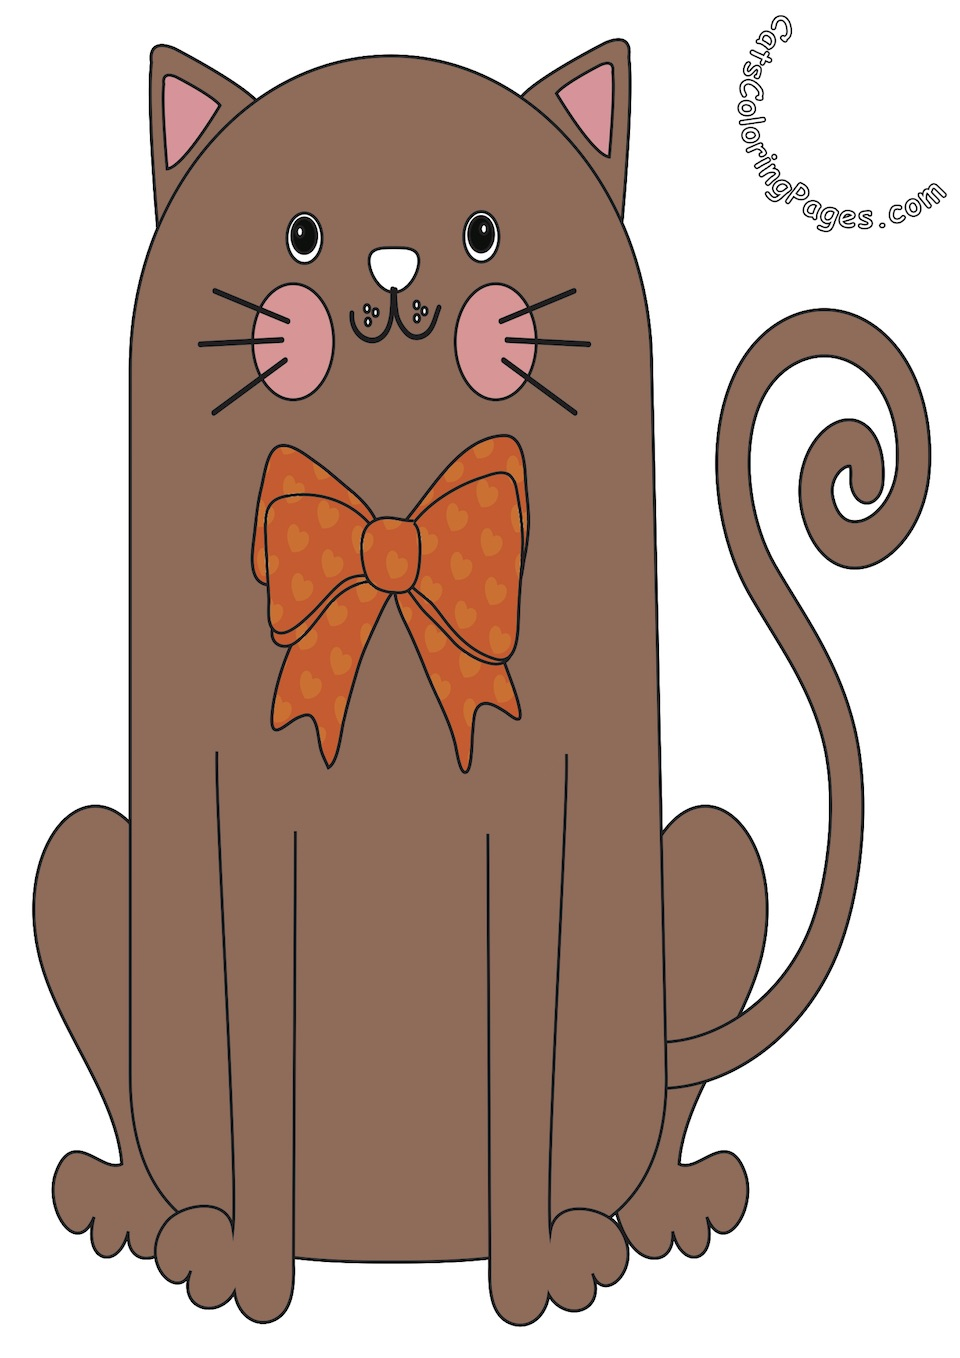 Happy Cat with Bow Tie Colored Coloring Page